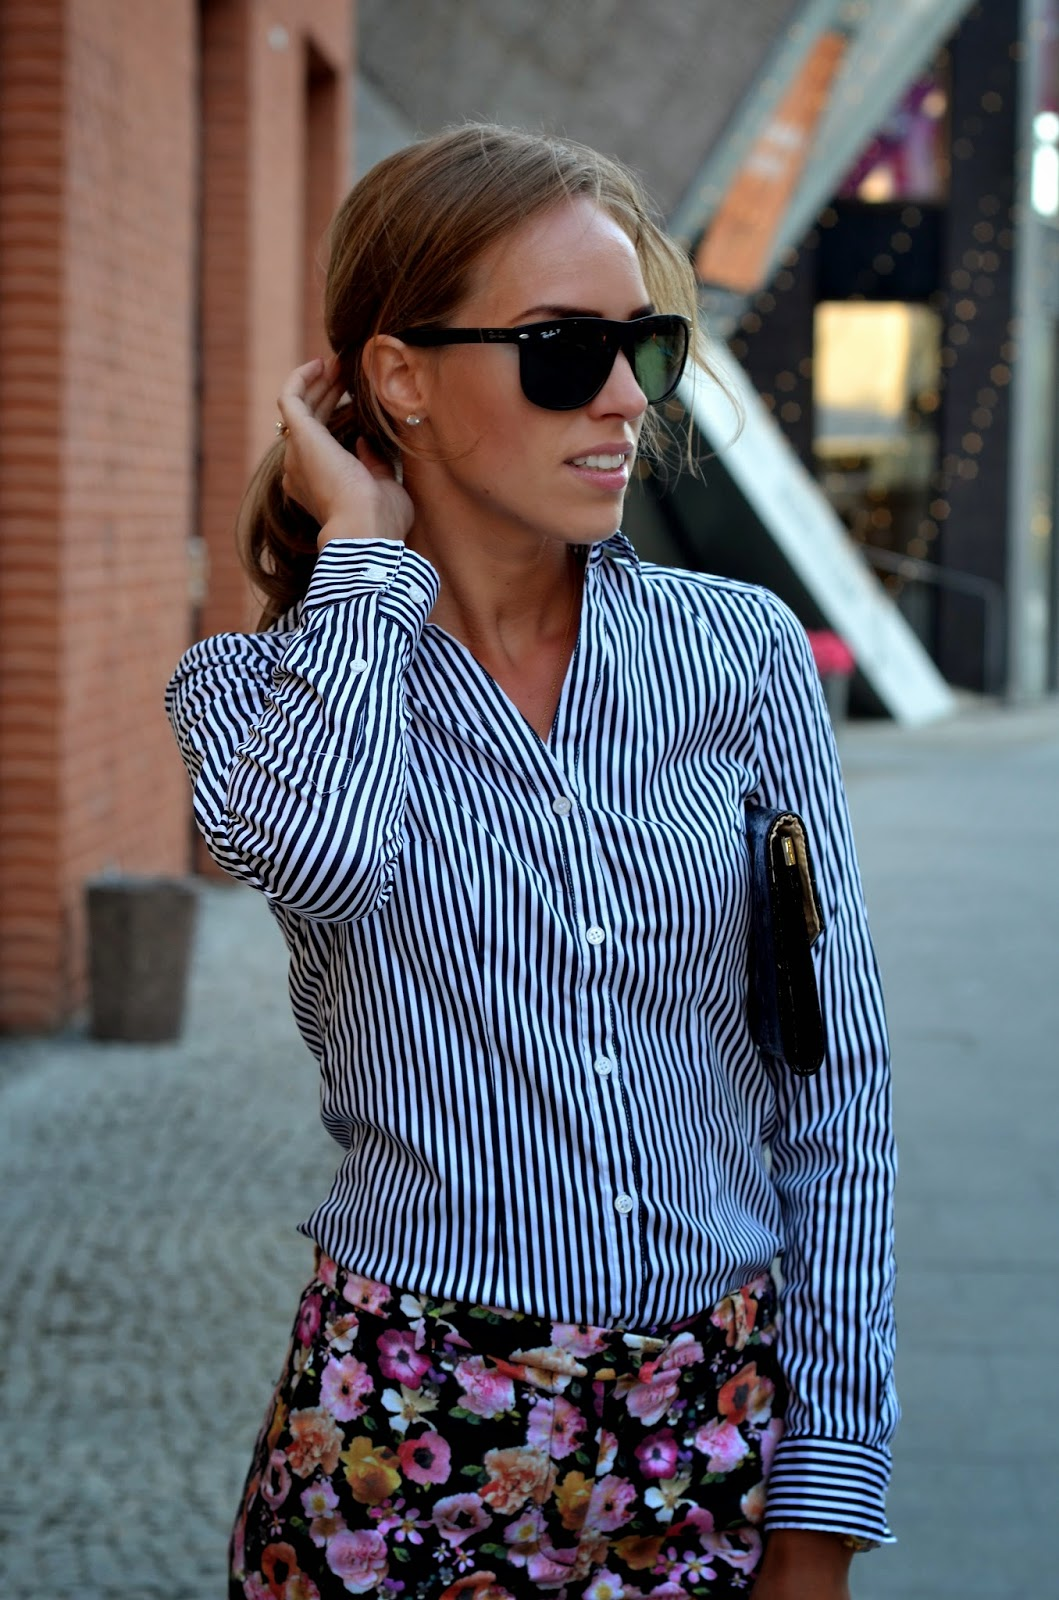 ray abn sunglasses striped hm shirt